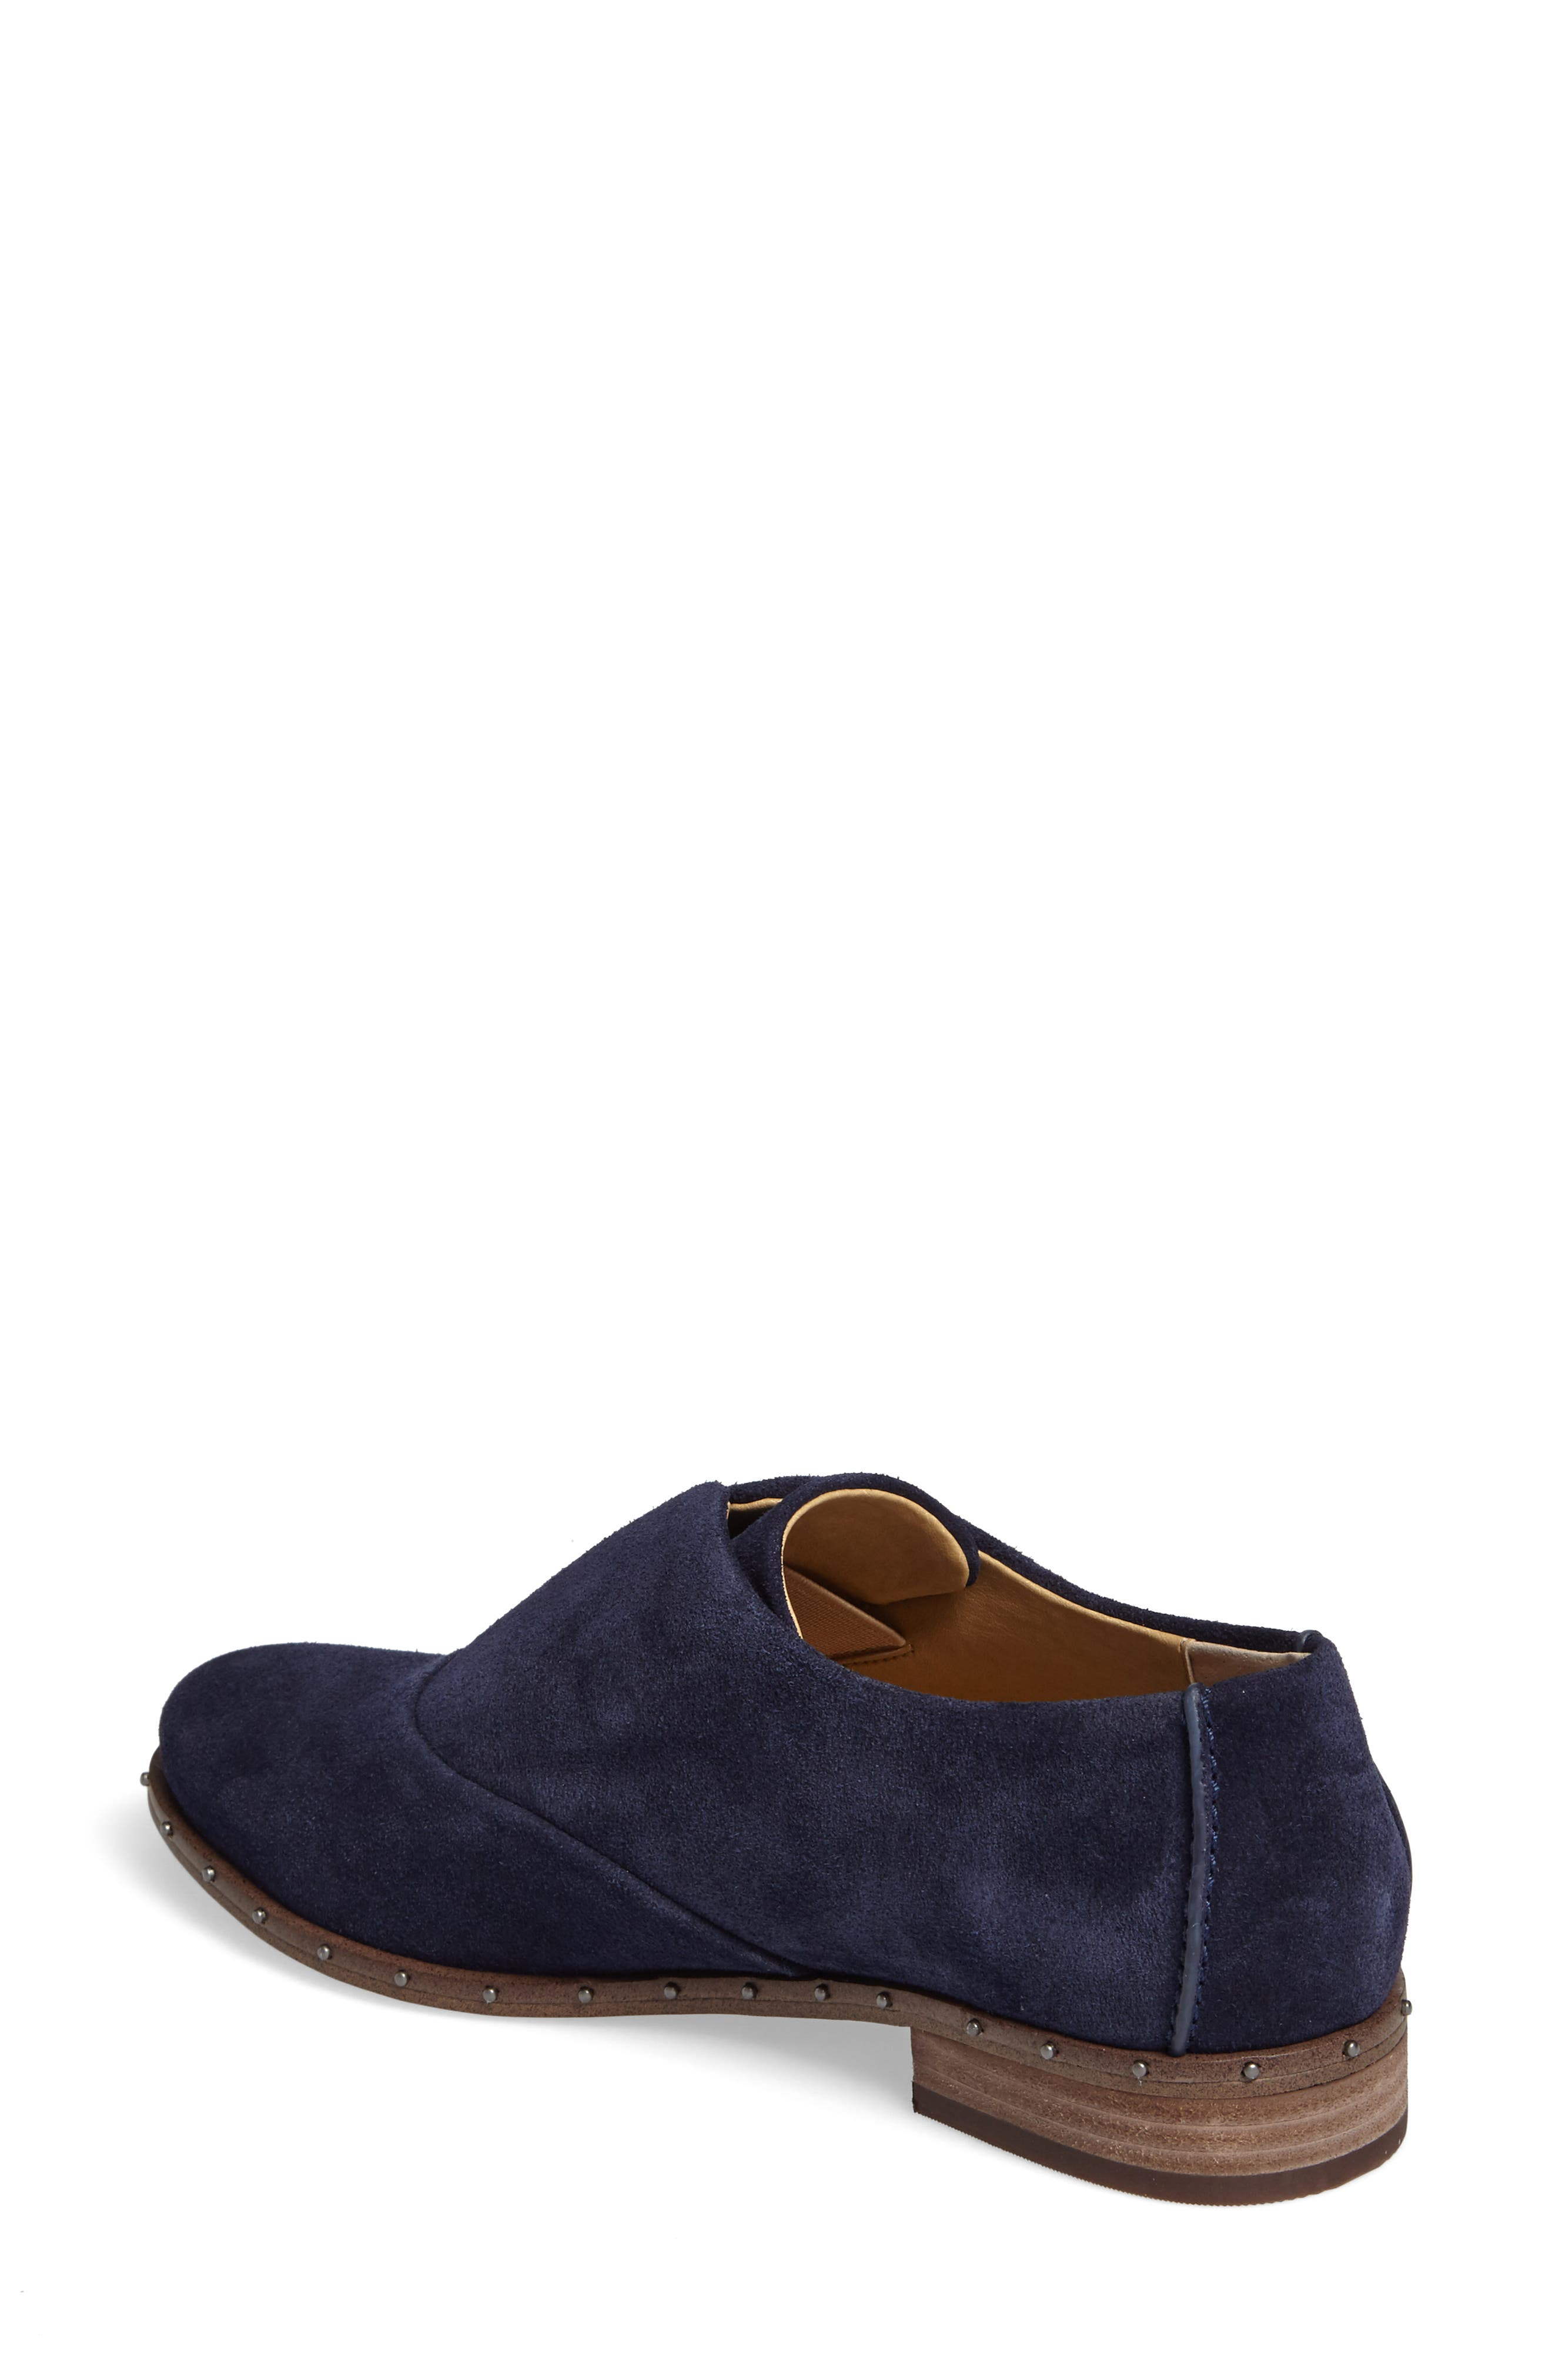 Deandra Studded Laceless Oxford,                             Alternate thumbnail 2, color,                             Navy Suede